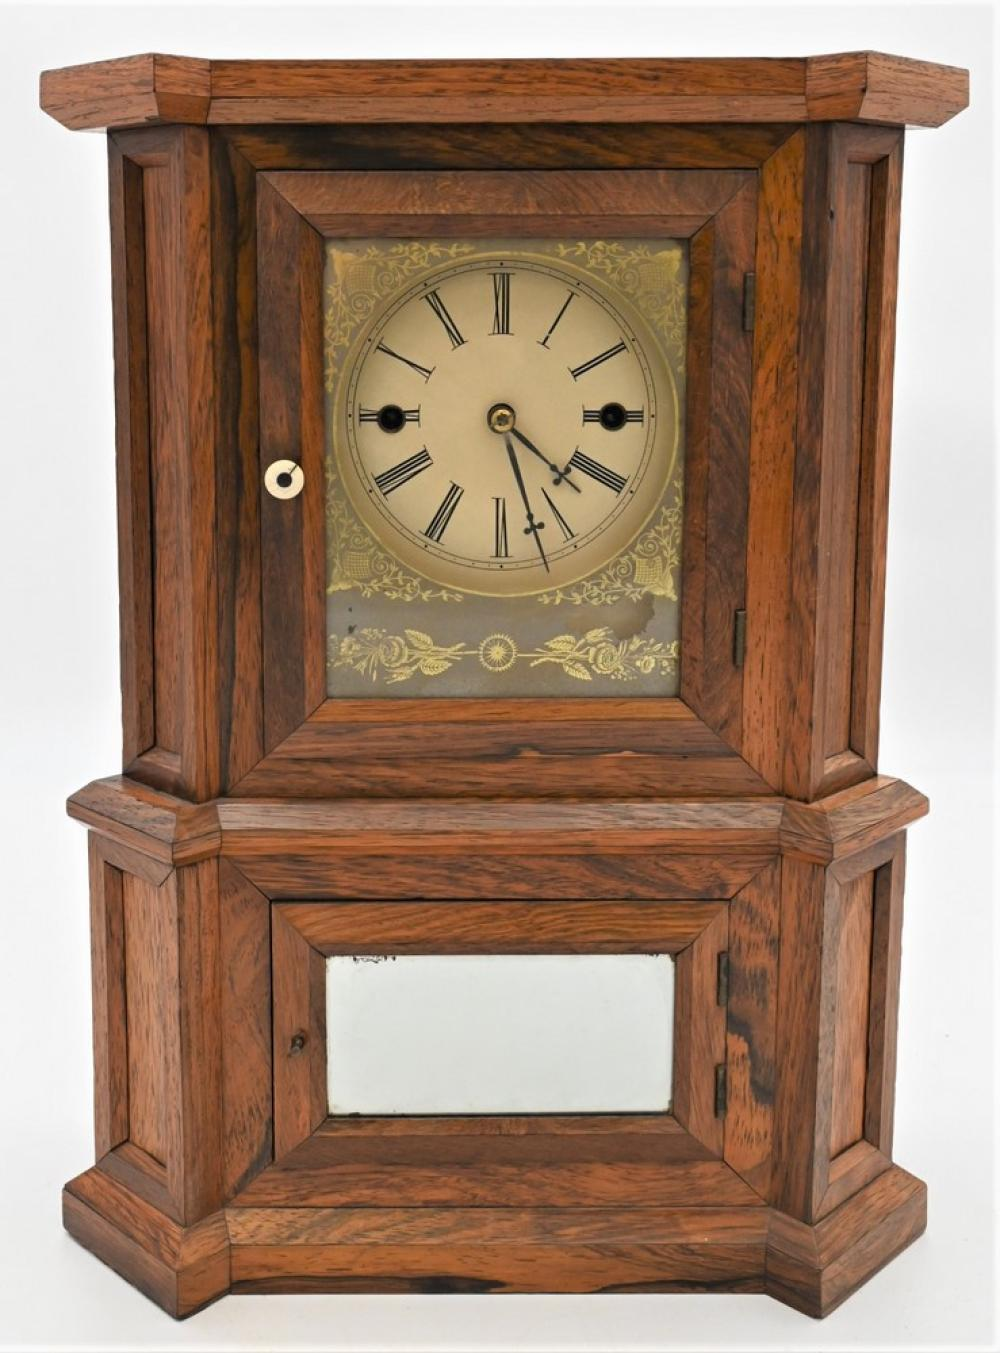 """Atkins Rosewood Wagon Spring Clockhaving 30 day """"Equalizing Lever Spring"""" movement and pendulum, replaced dialheight 17 1/2 inches..."""